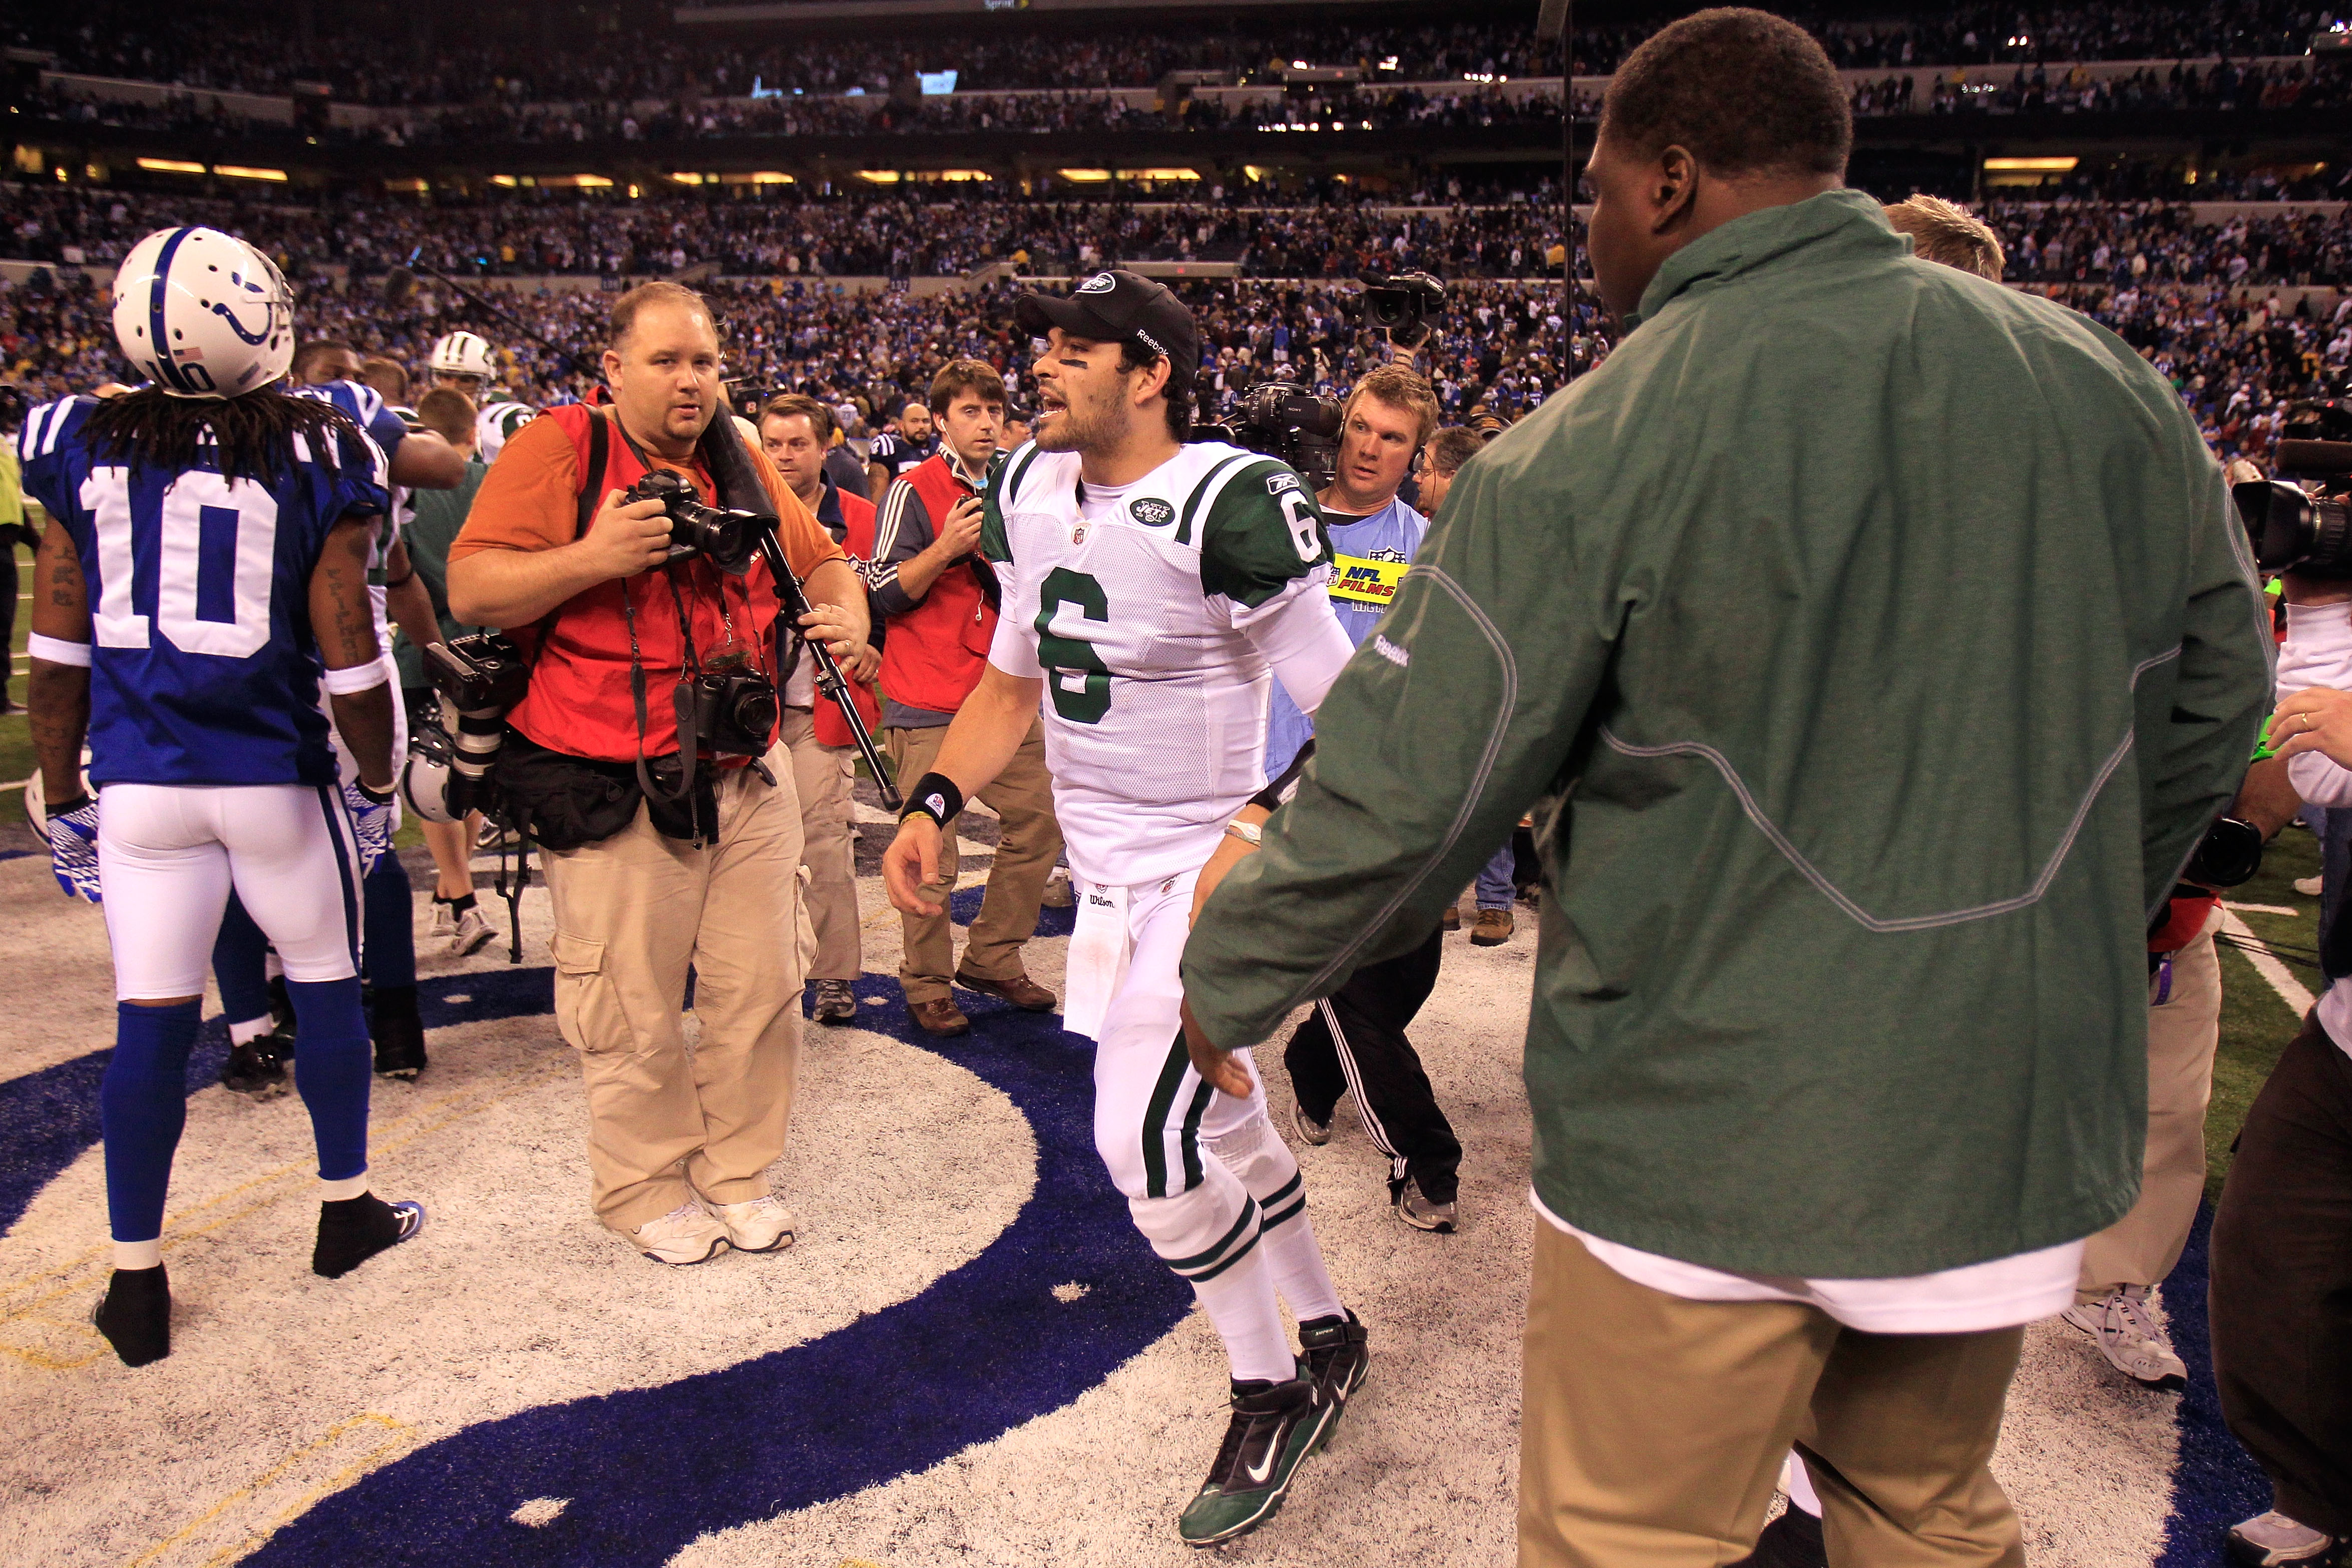 INDIANAPOLIS, IN - JANUARY 08:  Quarterback Mark Sanchez #6 of the New York Jets celebrates as he walks off the field after the Jets won 17-16 against the Indianapolis Colts during their 2011 AFC wild card playoff game at Lucas Oil Stadium on January 8, 2